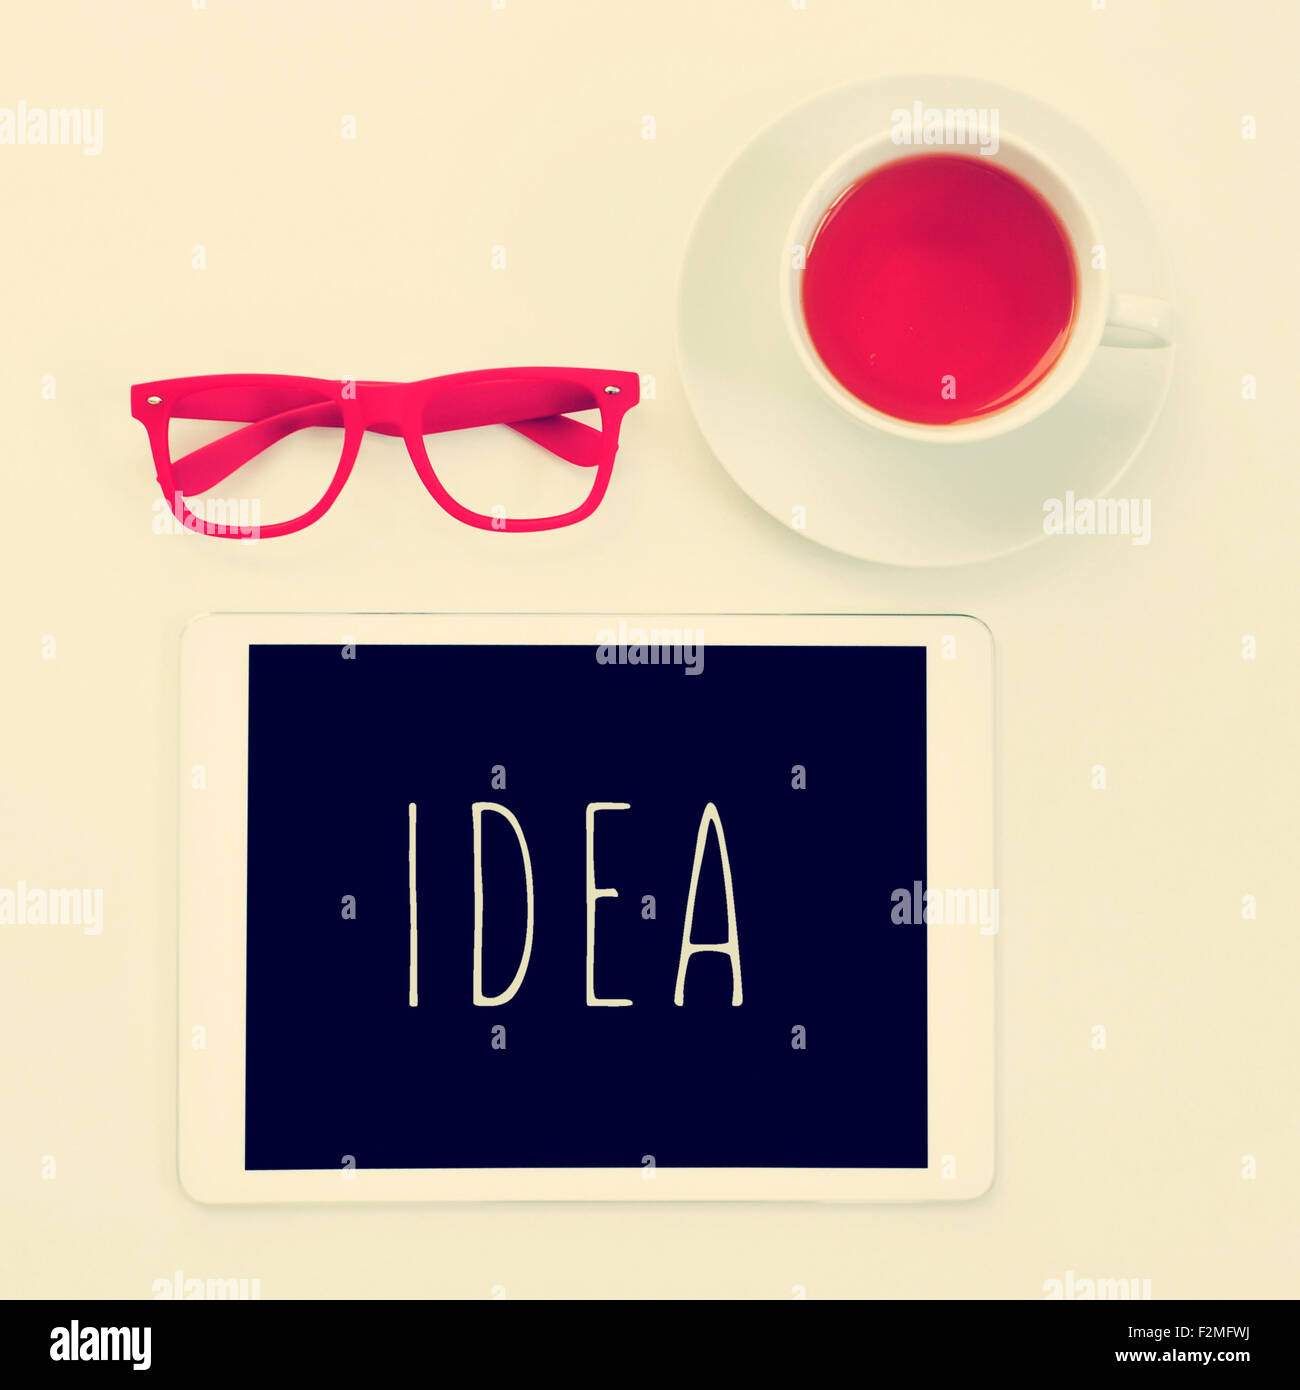 high-angle shot of a table with a pair of red plastic-rimmed eyeglasses, a cup of tea and a tablet computer with - Stock Image